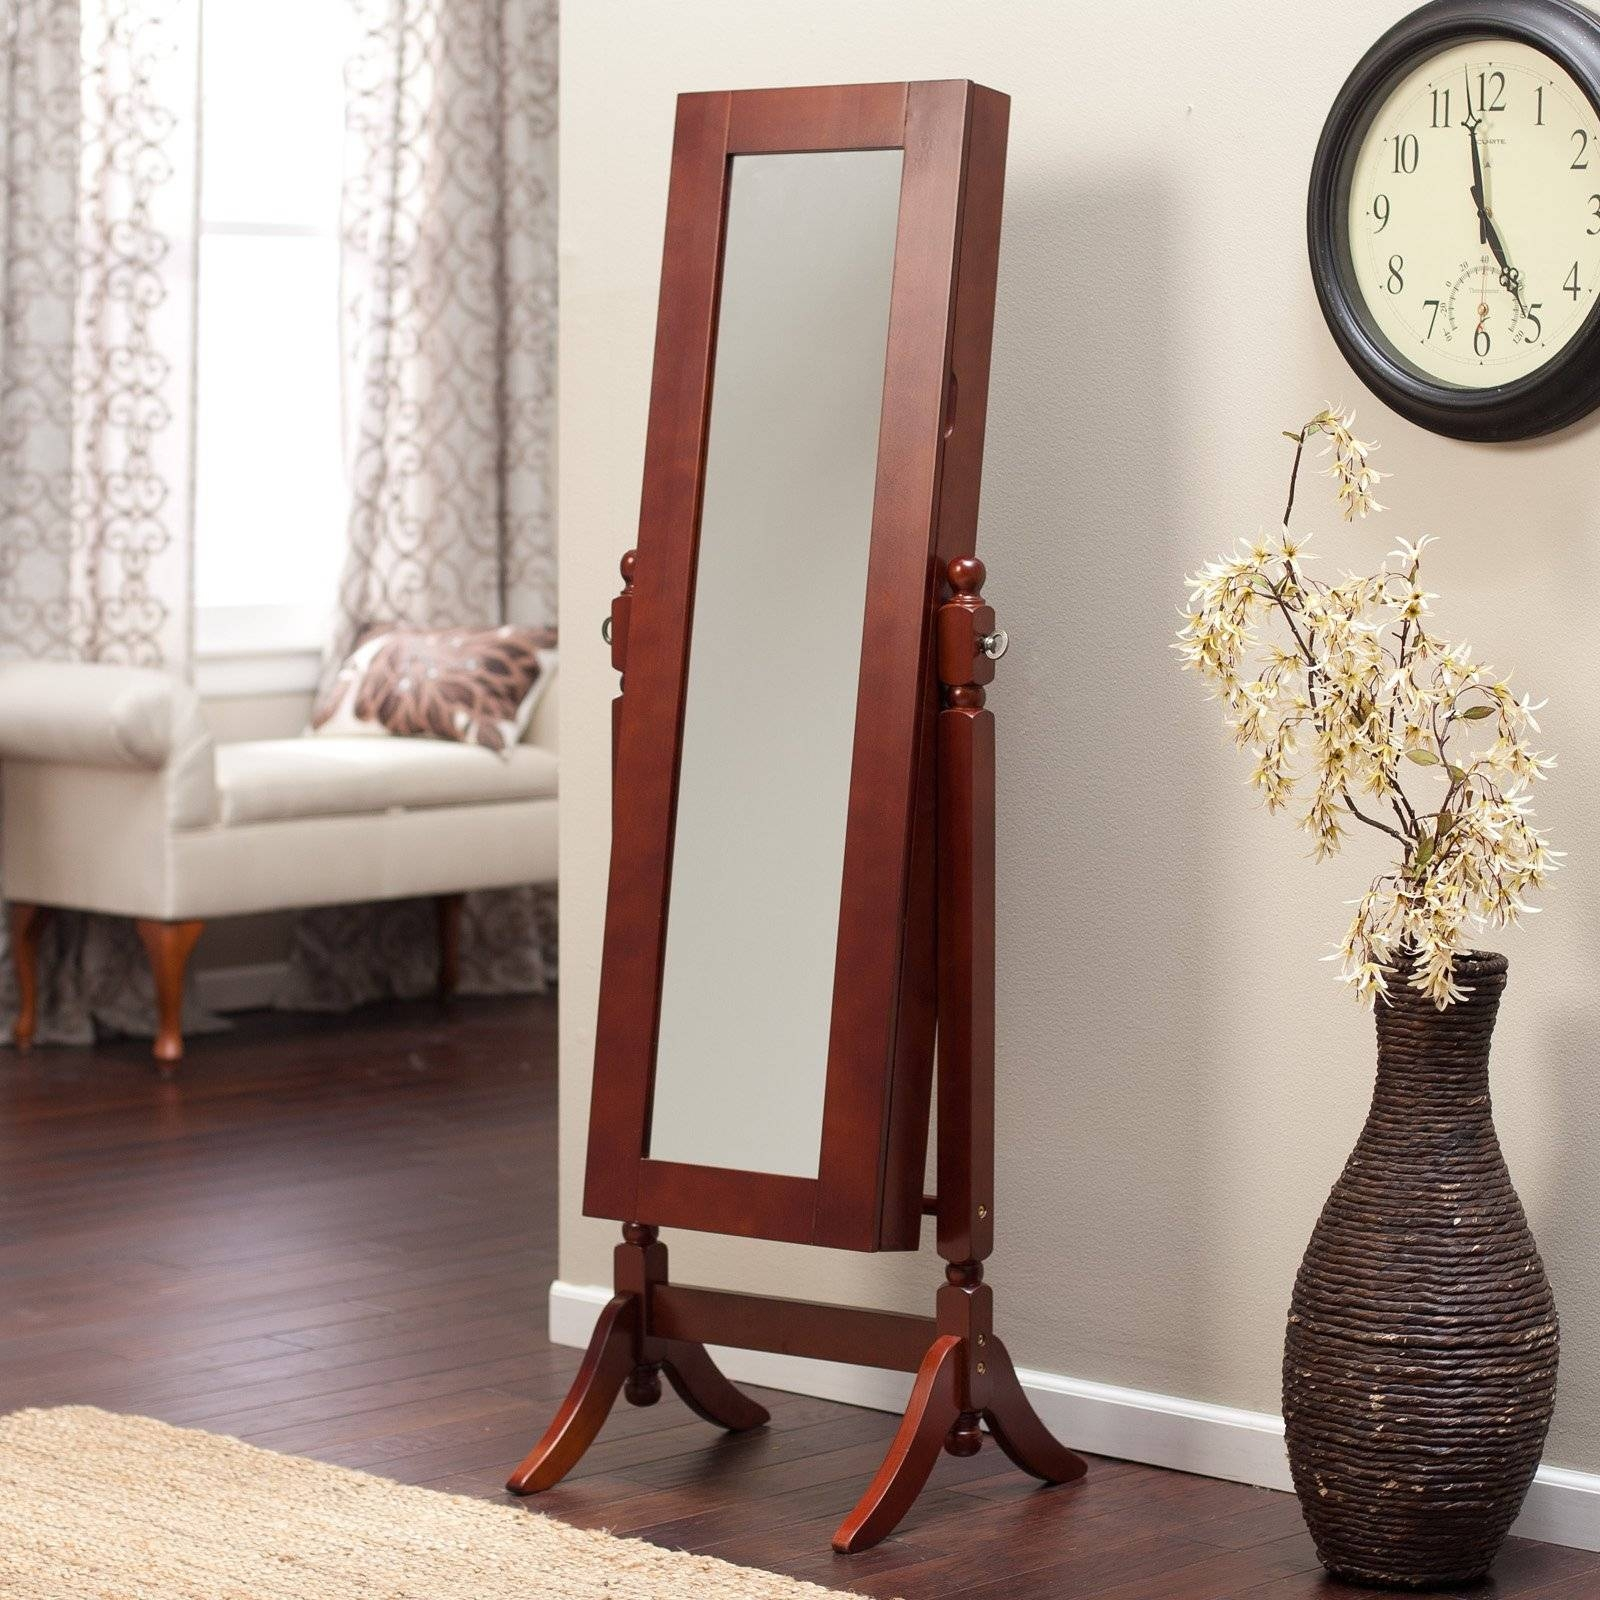 Bedroom Furniture Sets : Wooden Mirror Oversized Wall Mirrors For Small Gold Mirrors (View 7 of 25)